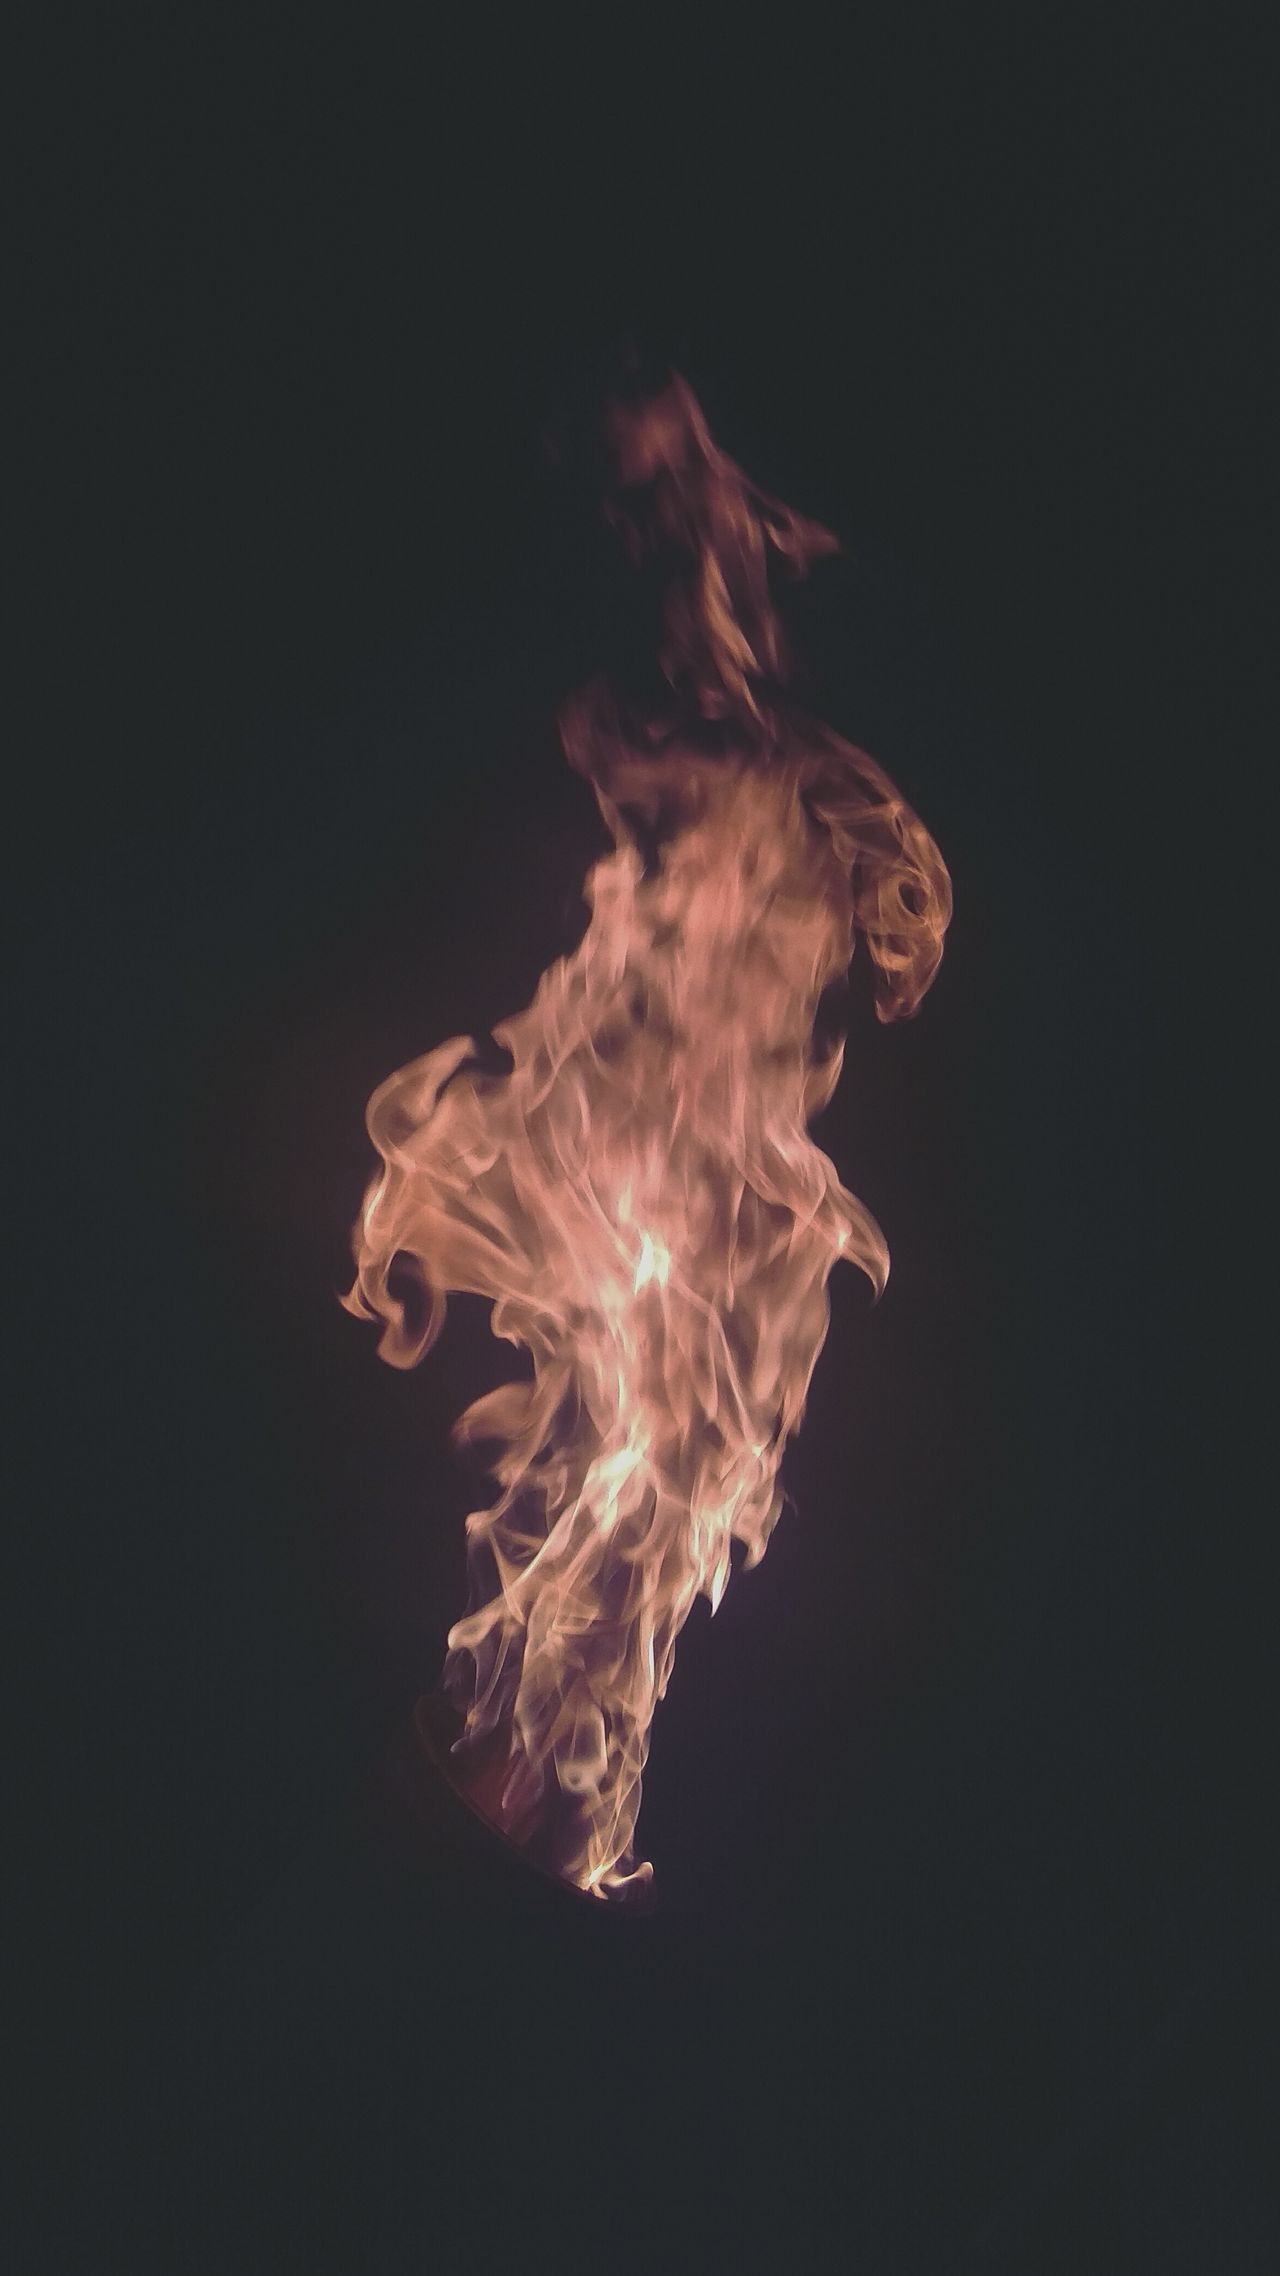 Taking Photos Face Abstract Fire Pyro